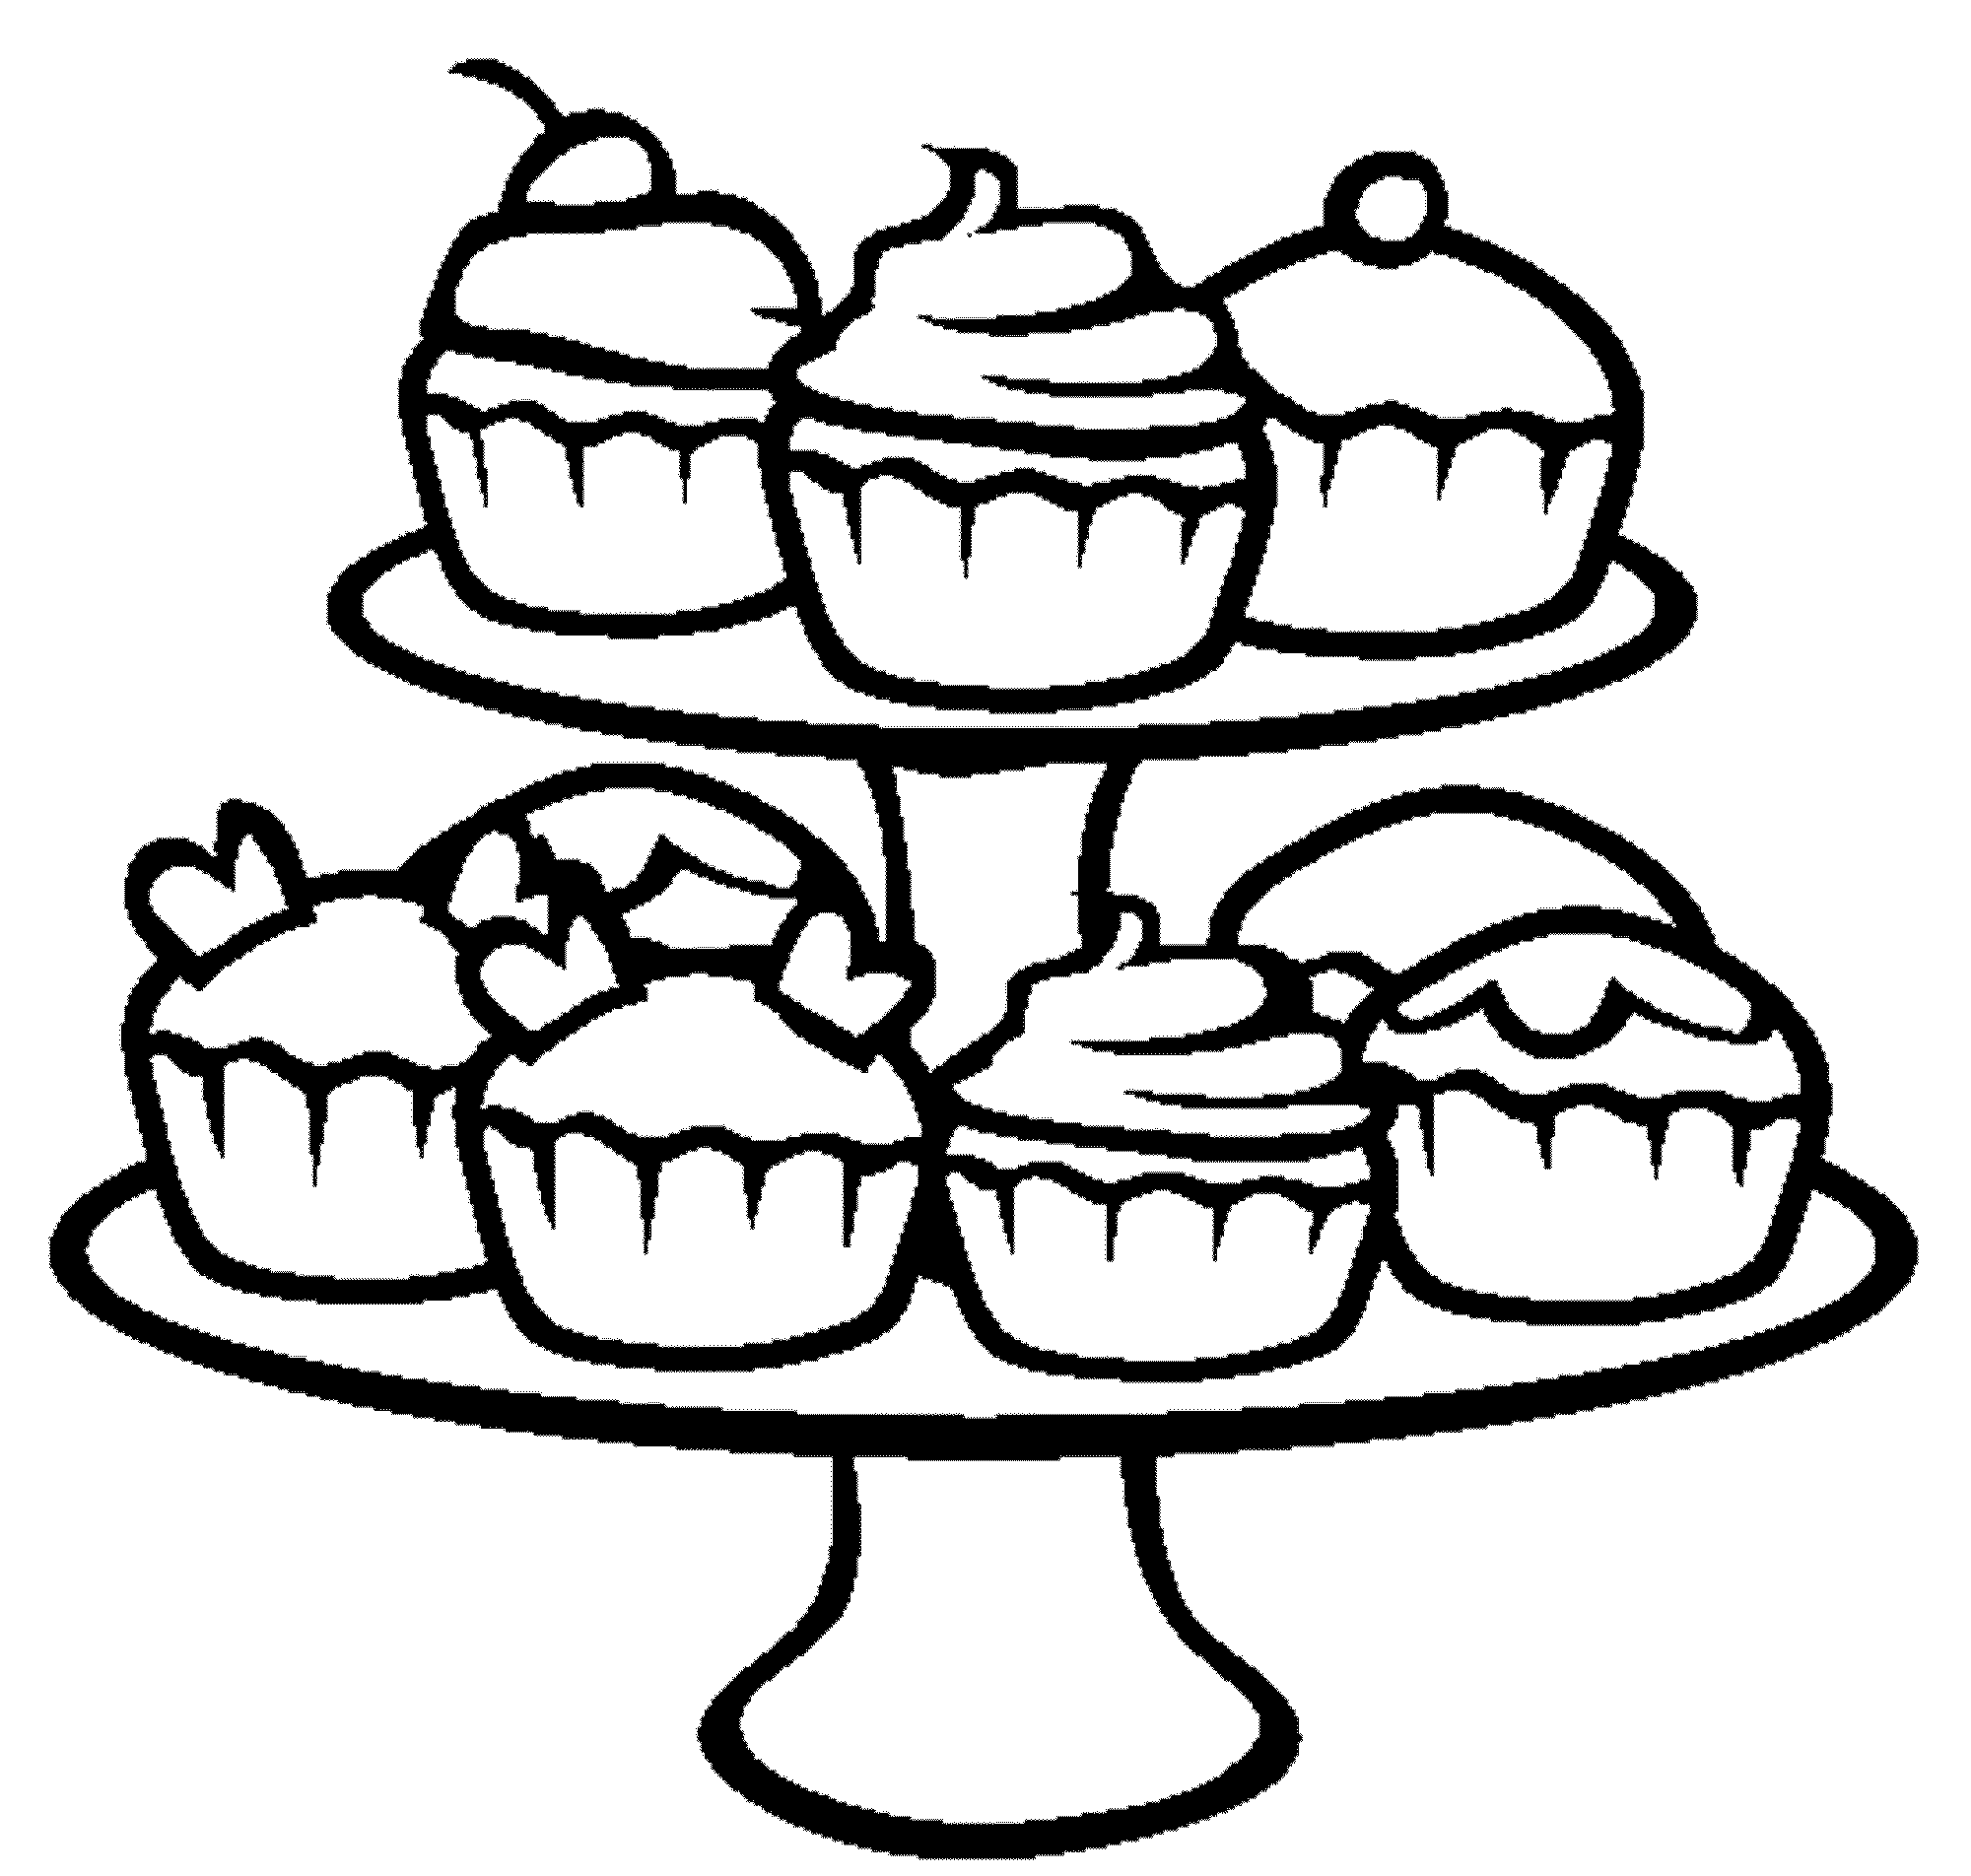 Cupcake Printable Coloring Pages - Coloring Home